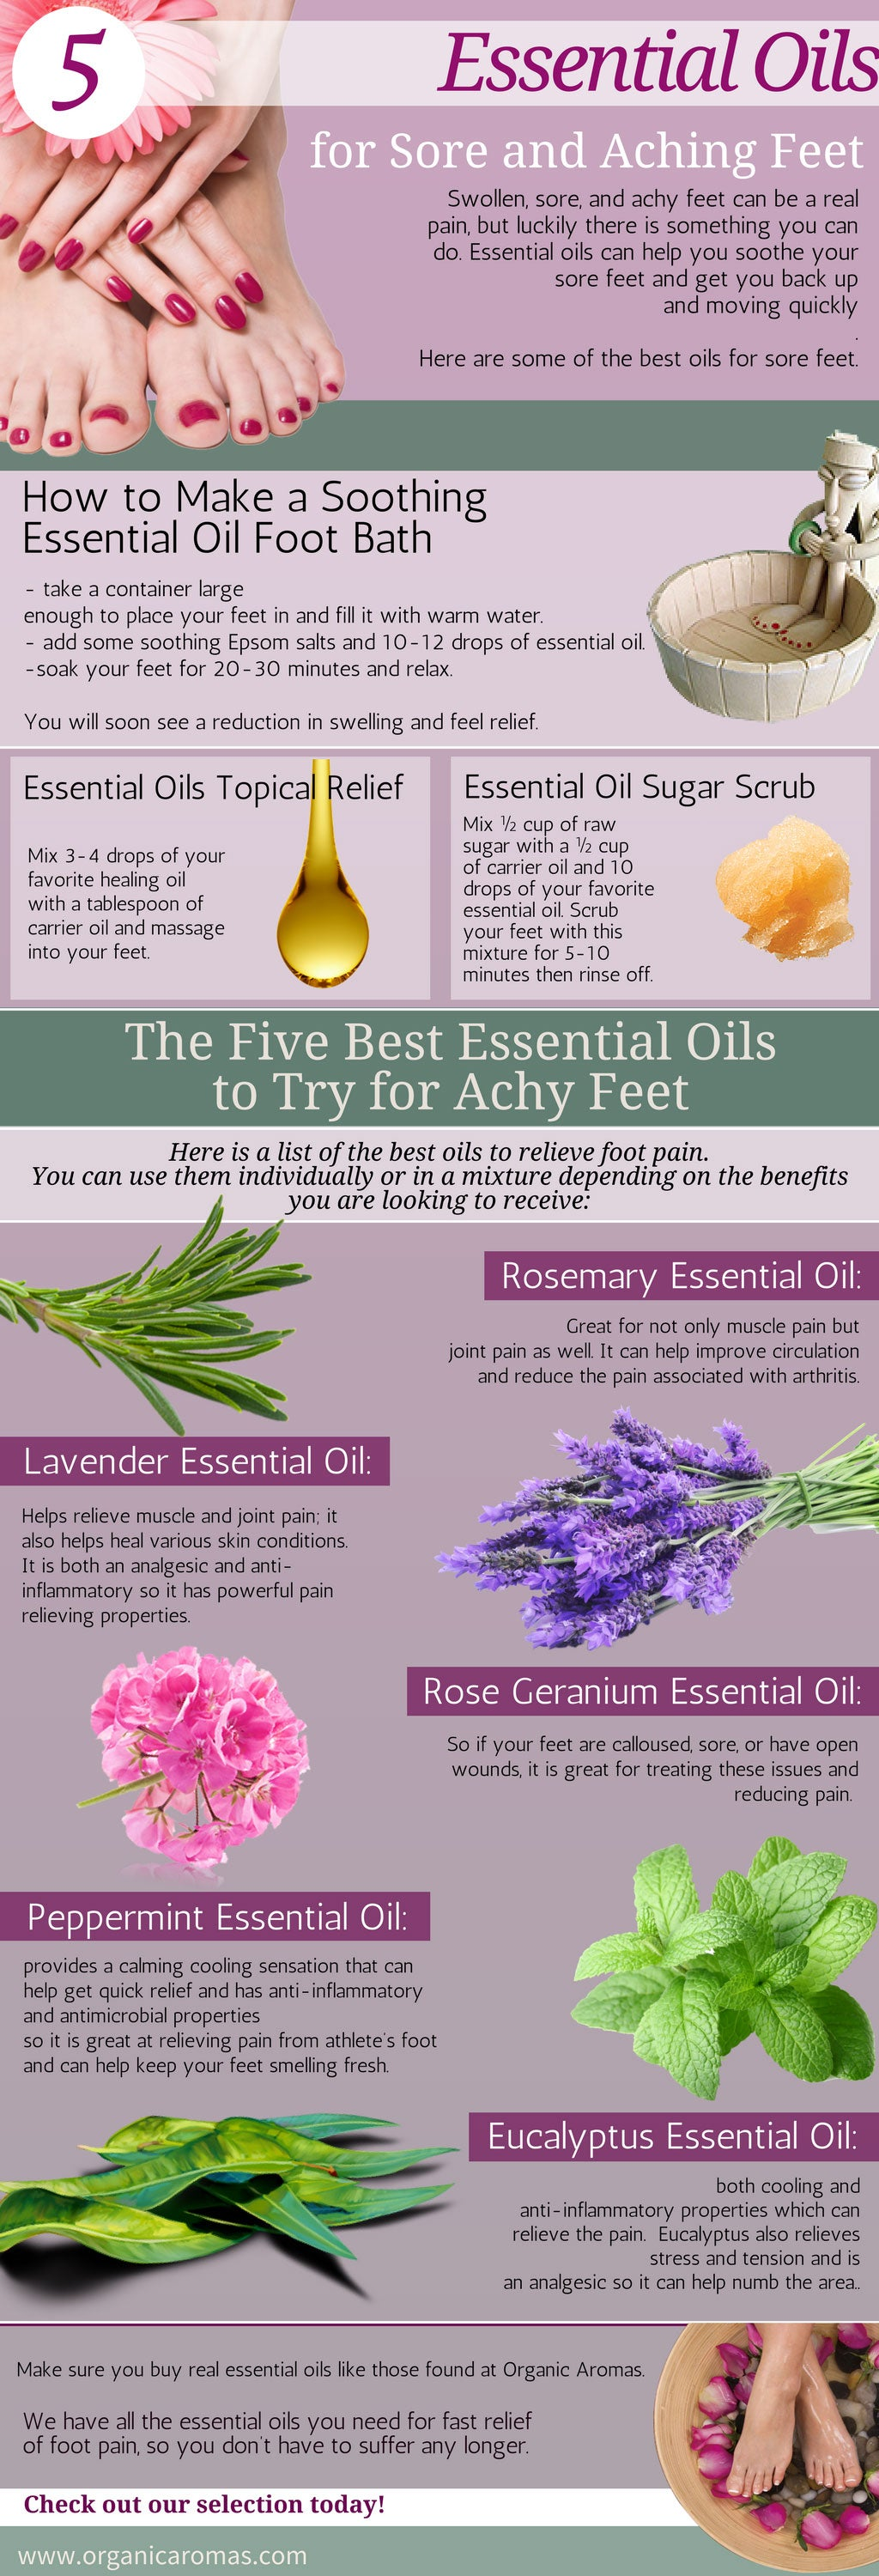 5 Essential Oils For Sore And Aching Feet Organic Aromas